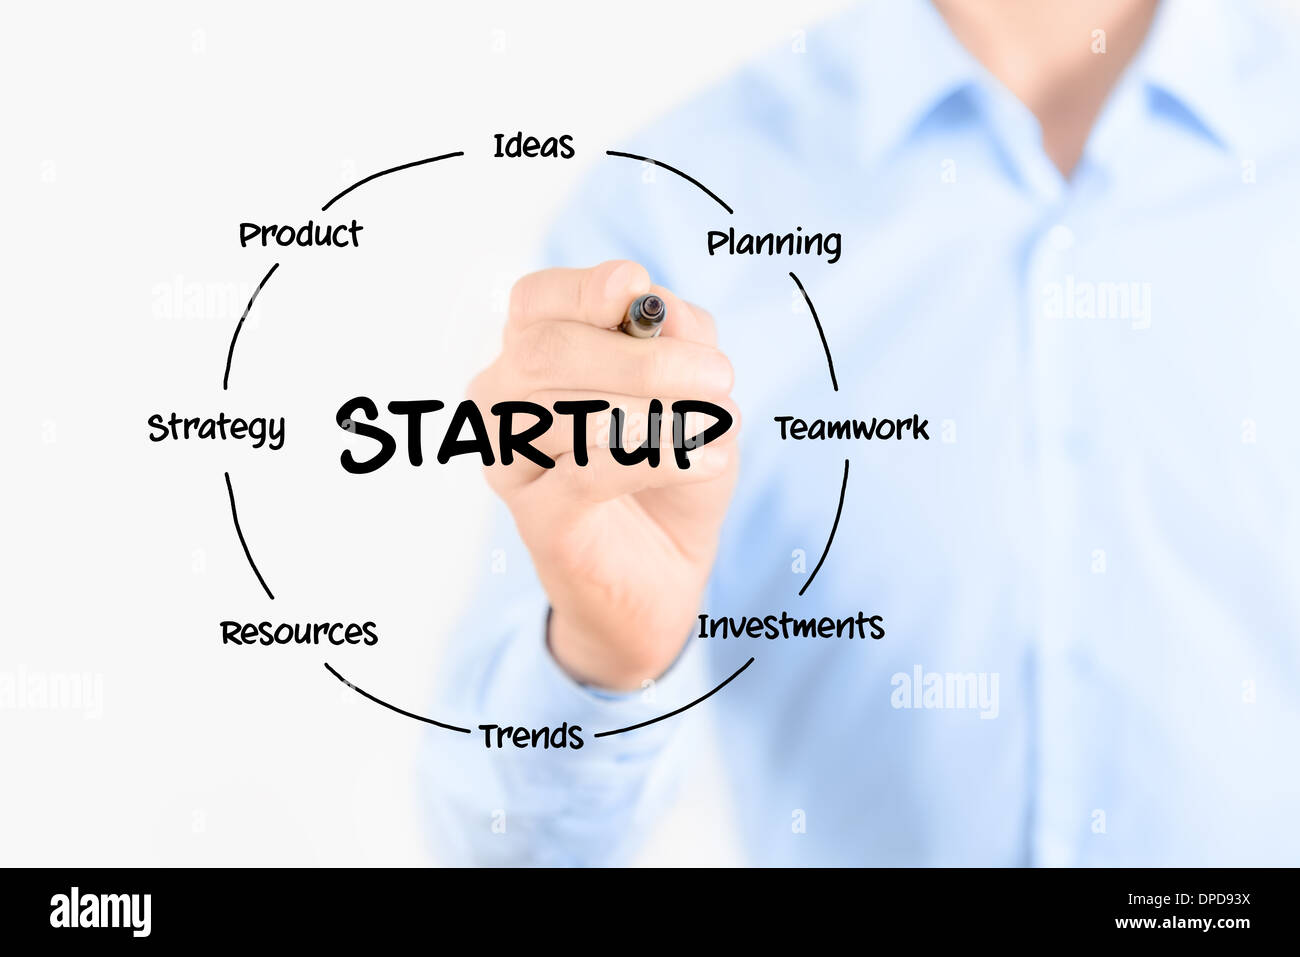 Startup circular structure diagram. Young businessman holding a marker and drawing a key elements for starting a - Stock Image